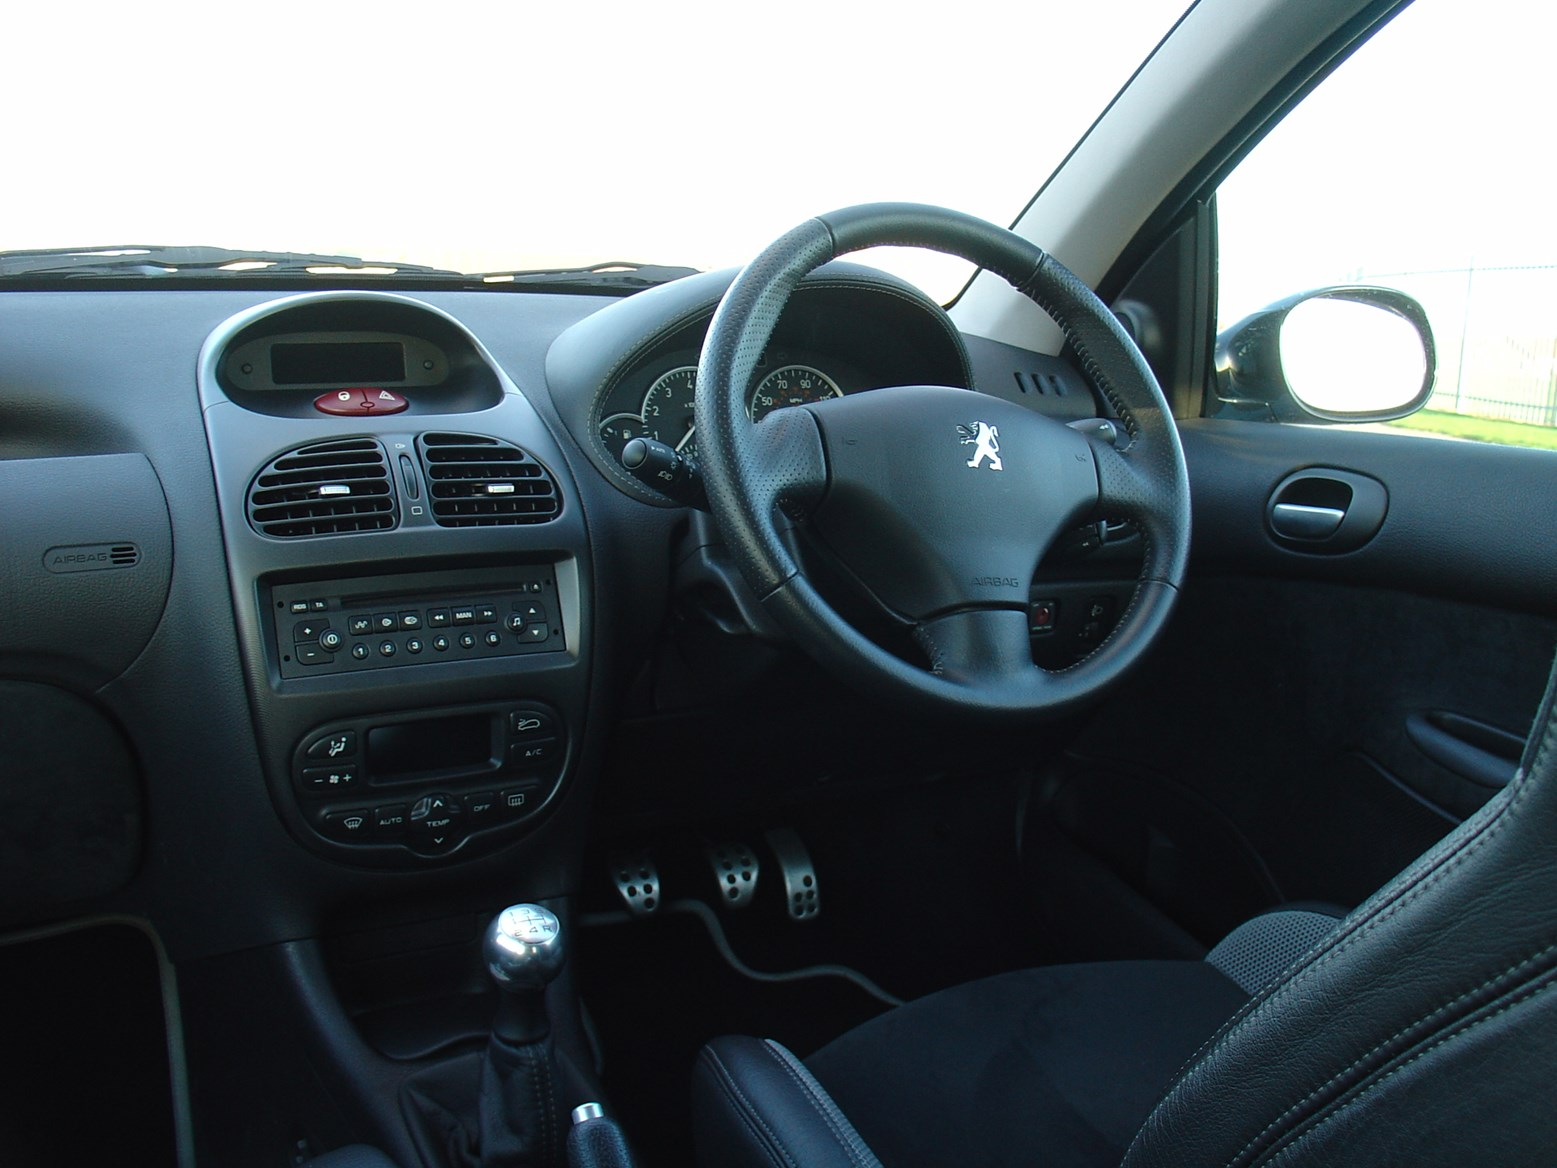 100 peugeot 308 gti interior peugeot 308 gti 1 6 thp 250bhp gti by peugeot sport 5d for. Black Bedroom Furniture Sets. Home Design Ideas